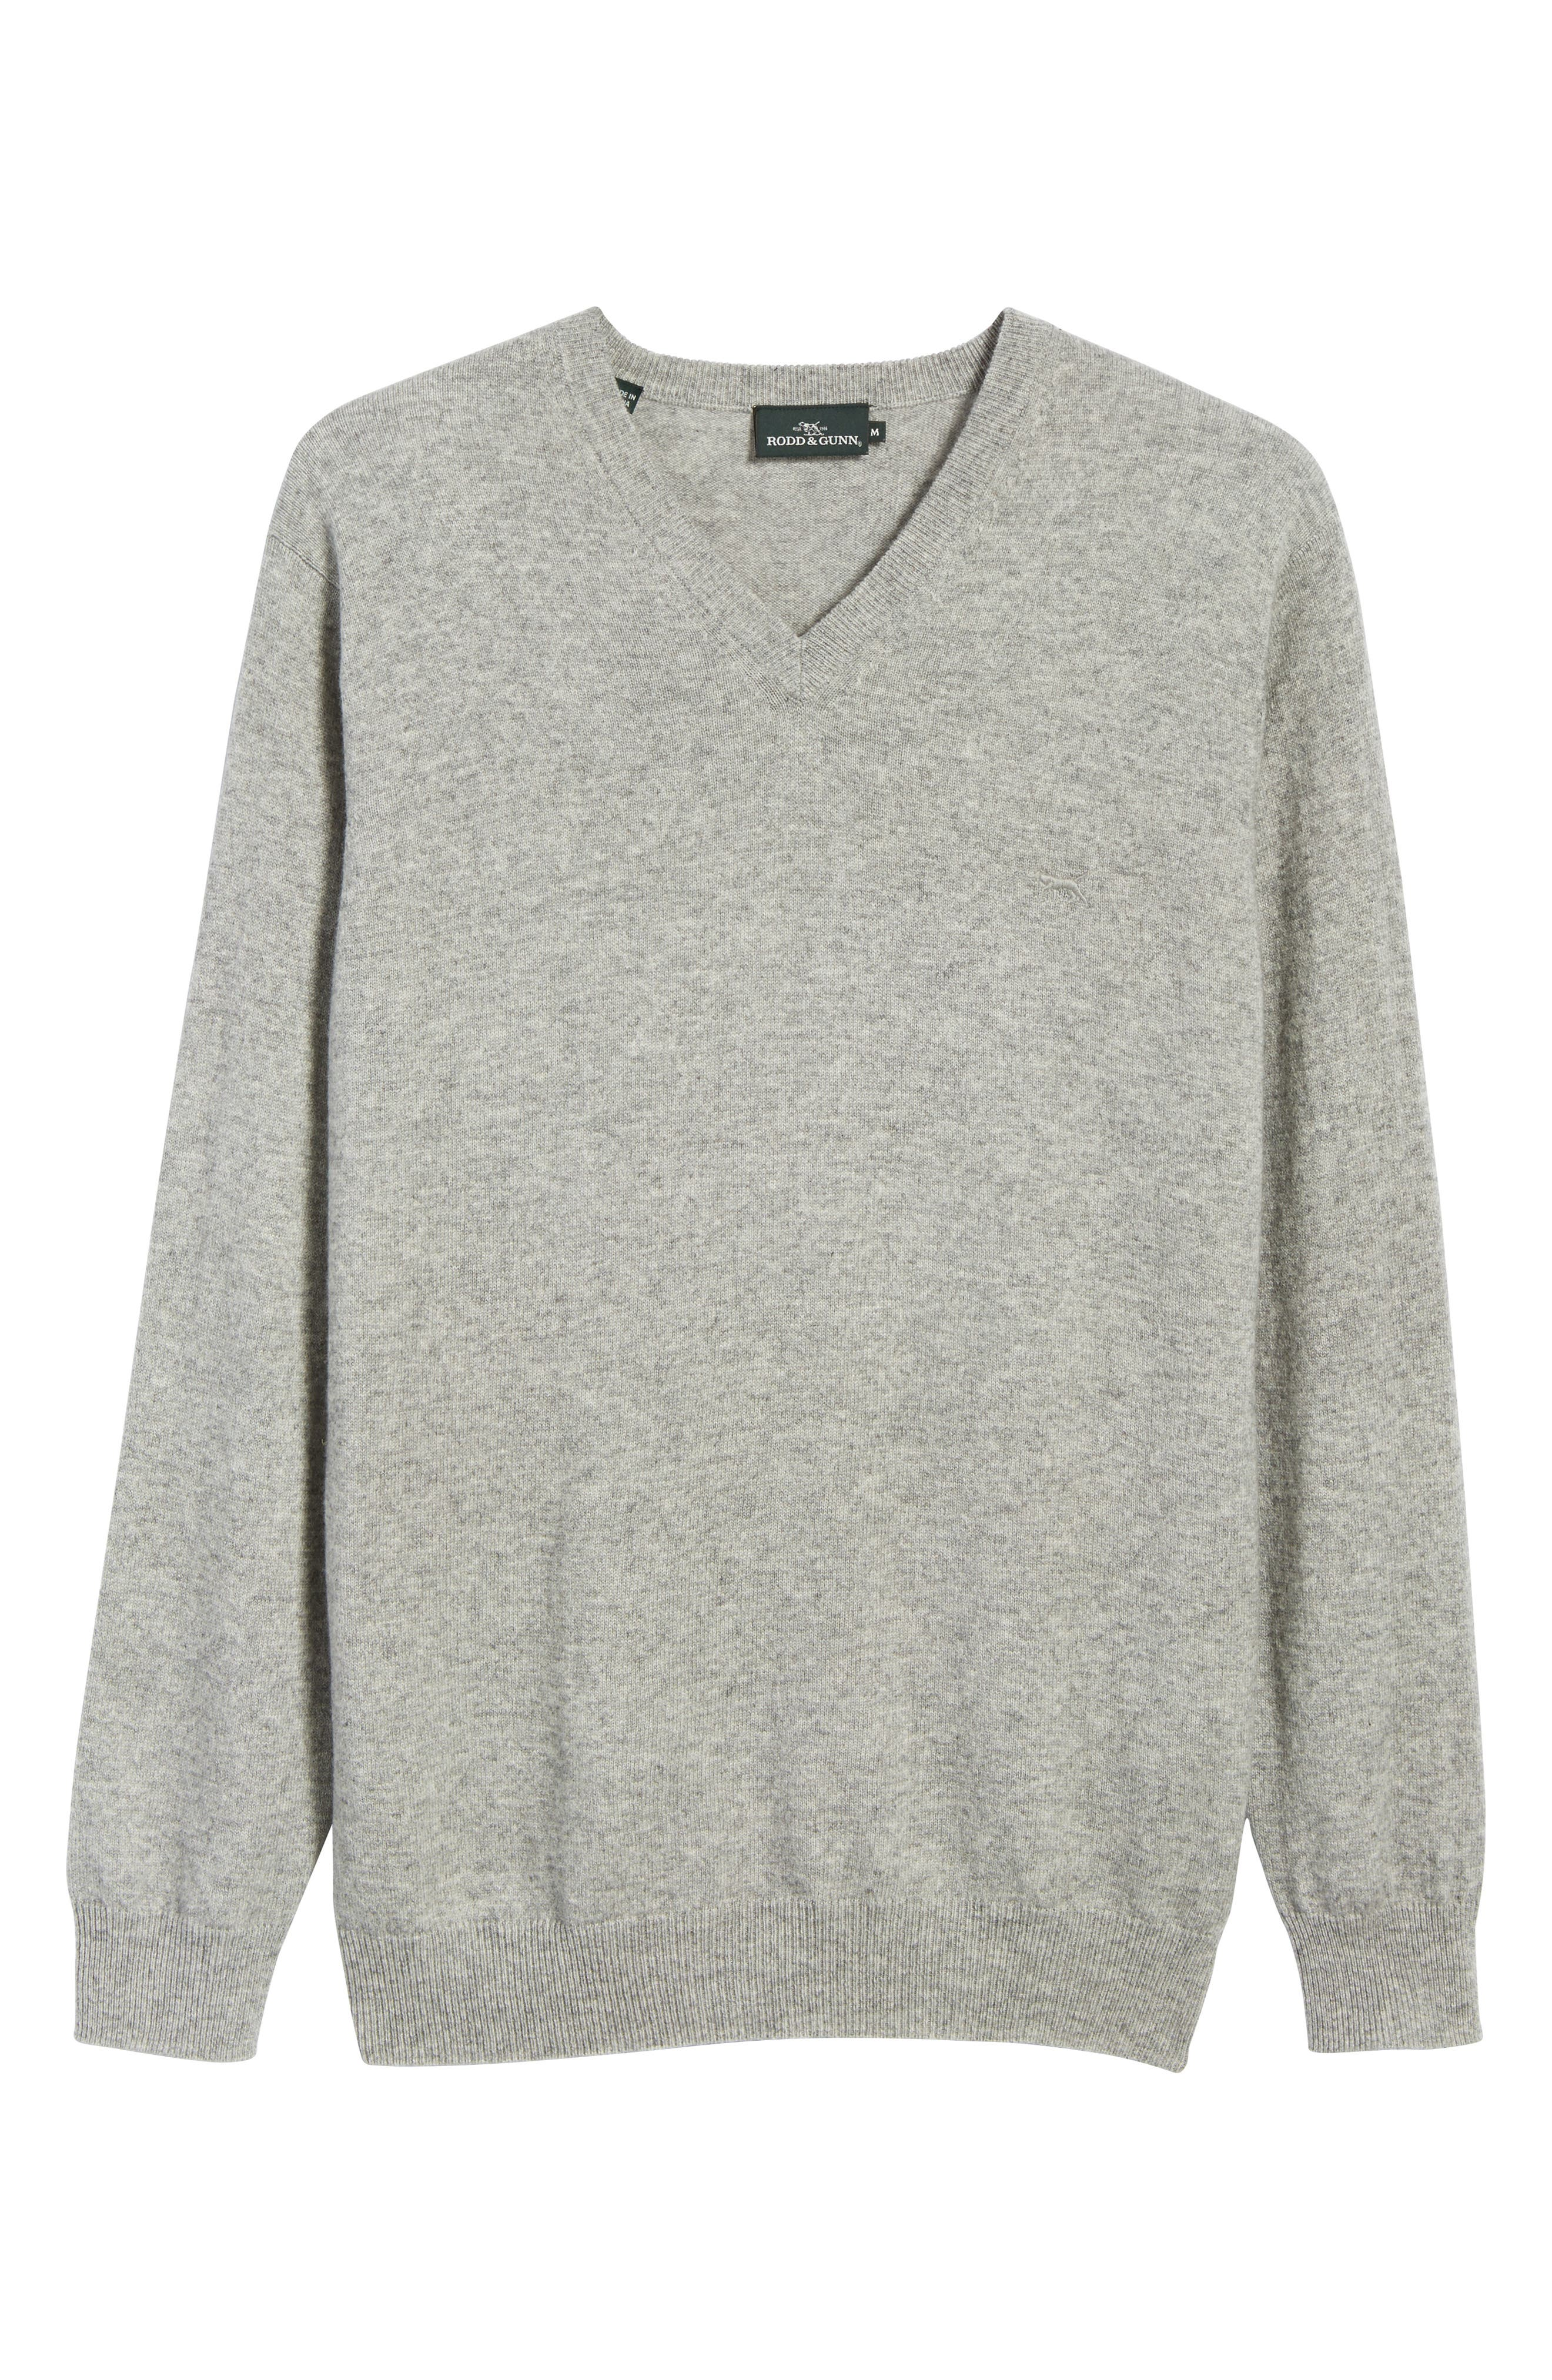 'Inchbonnie' Wool & Cashmere V-Neck Sweater,                             Alternate thumbnail 6, color,                             020